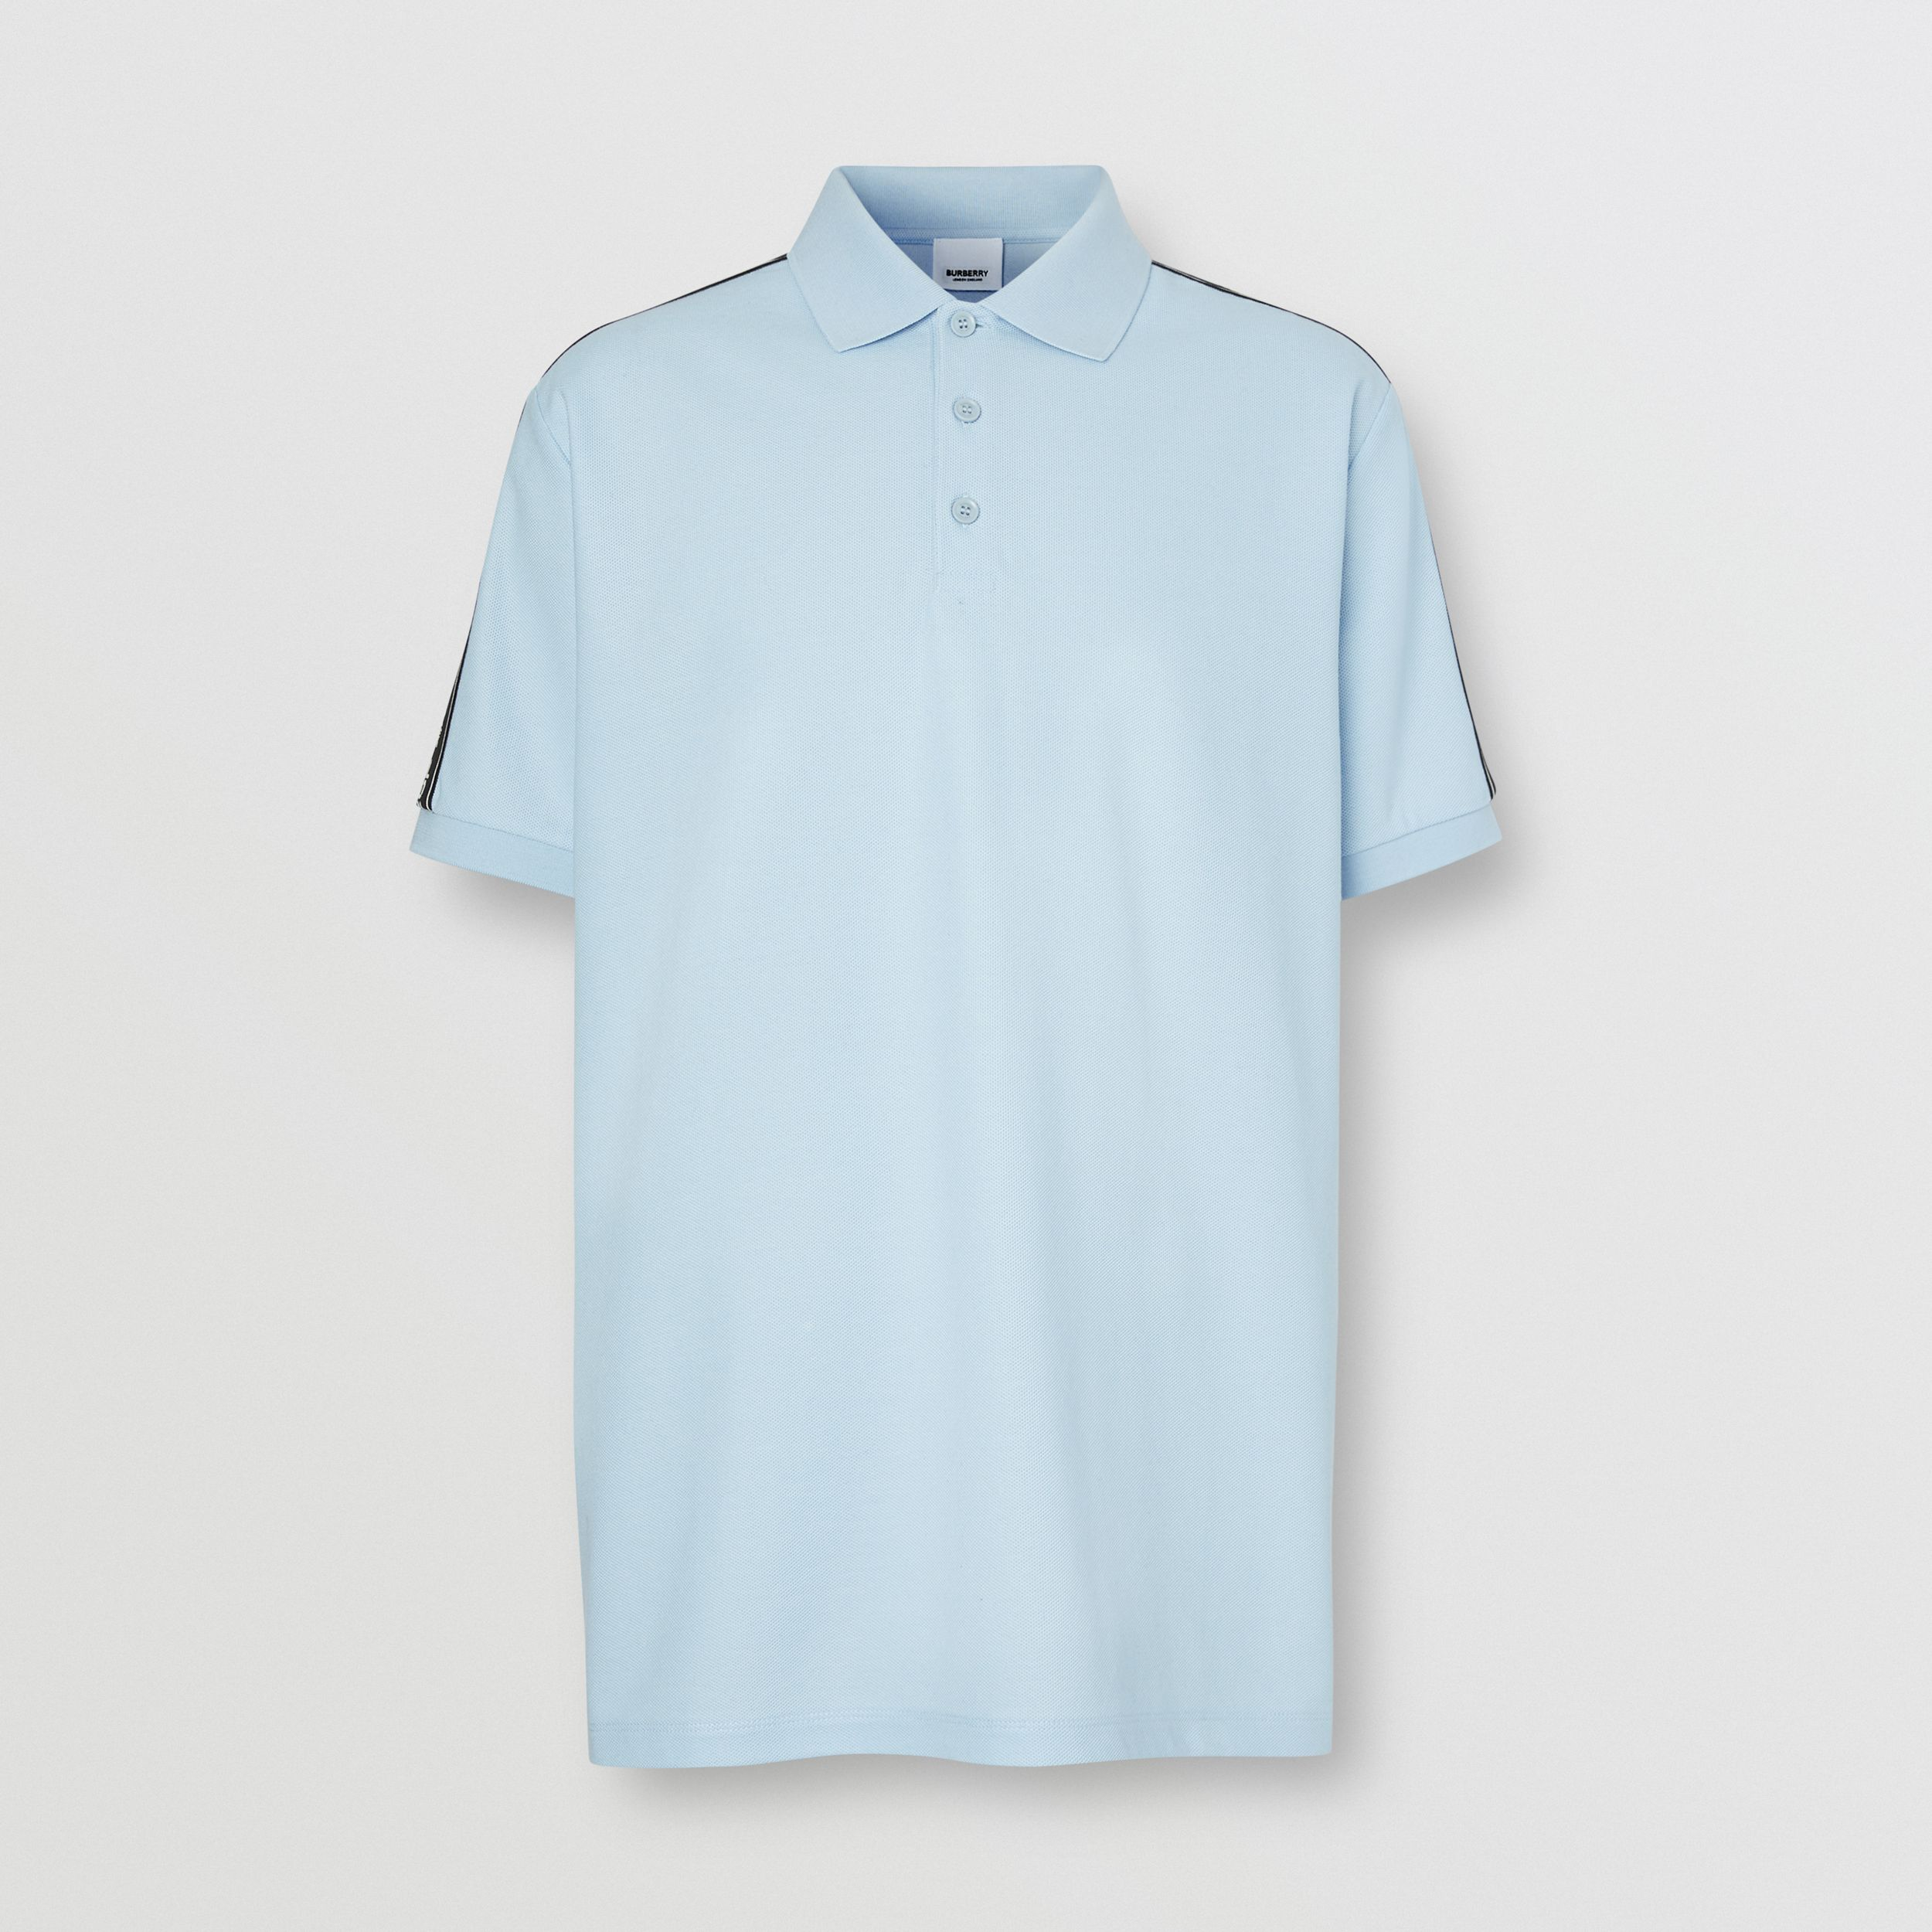 Logo Tape Cotton Piqué Polo Shirt in Pale Blue - Men | Burberry - 4